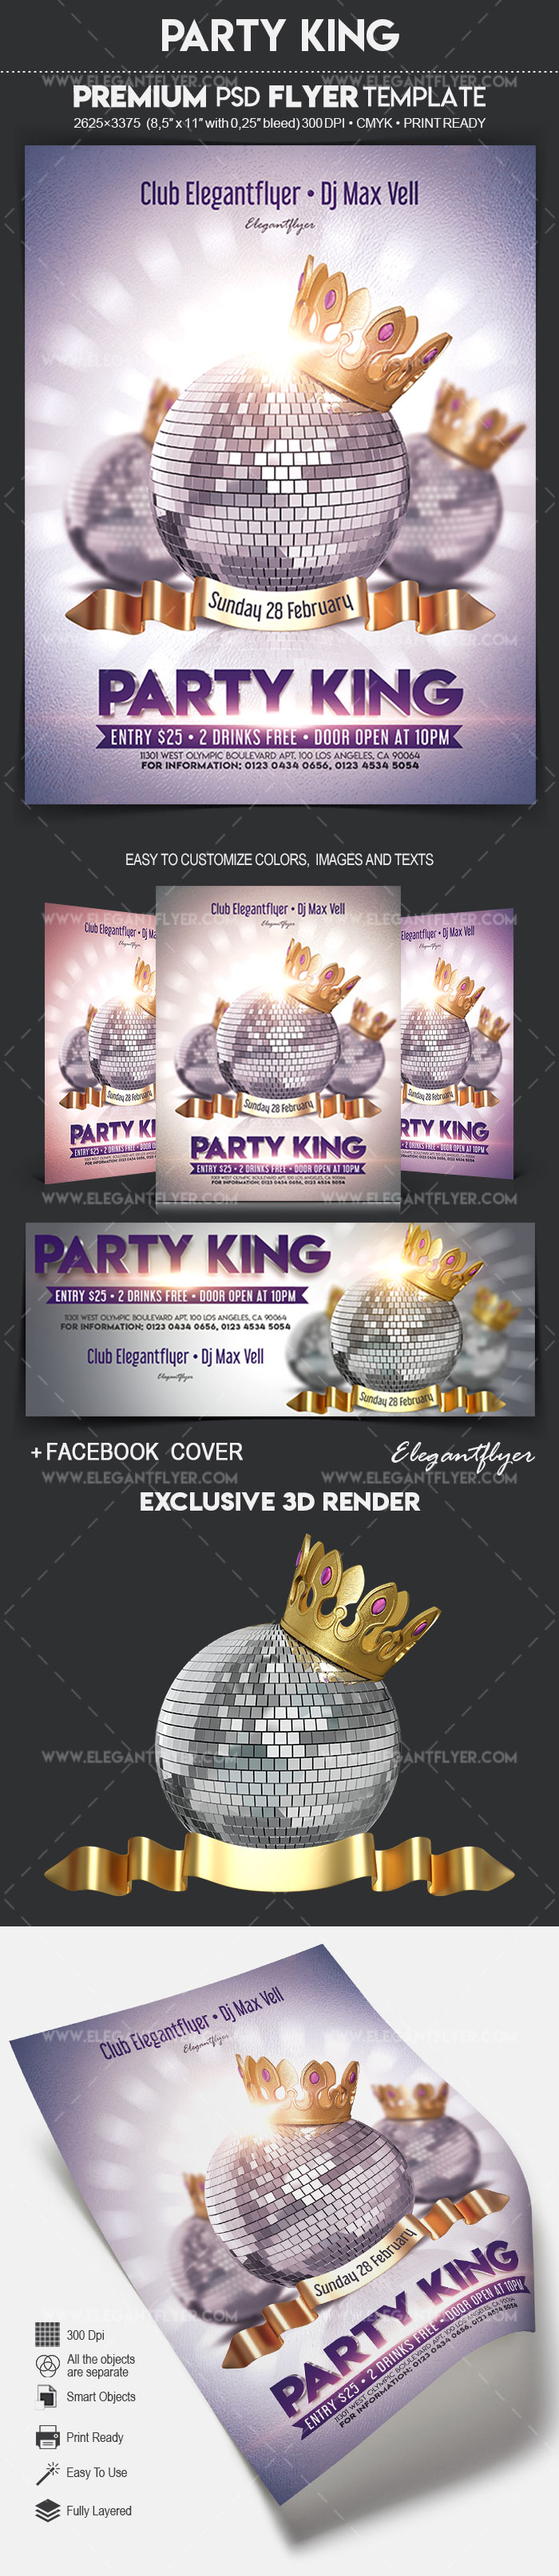 Party King – Flyer PSD Template + Facebook Cover